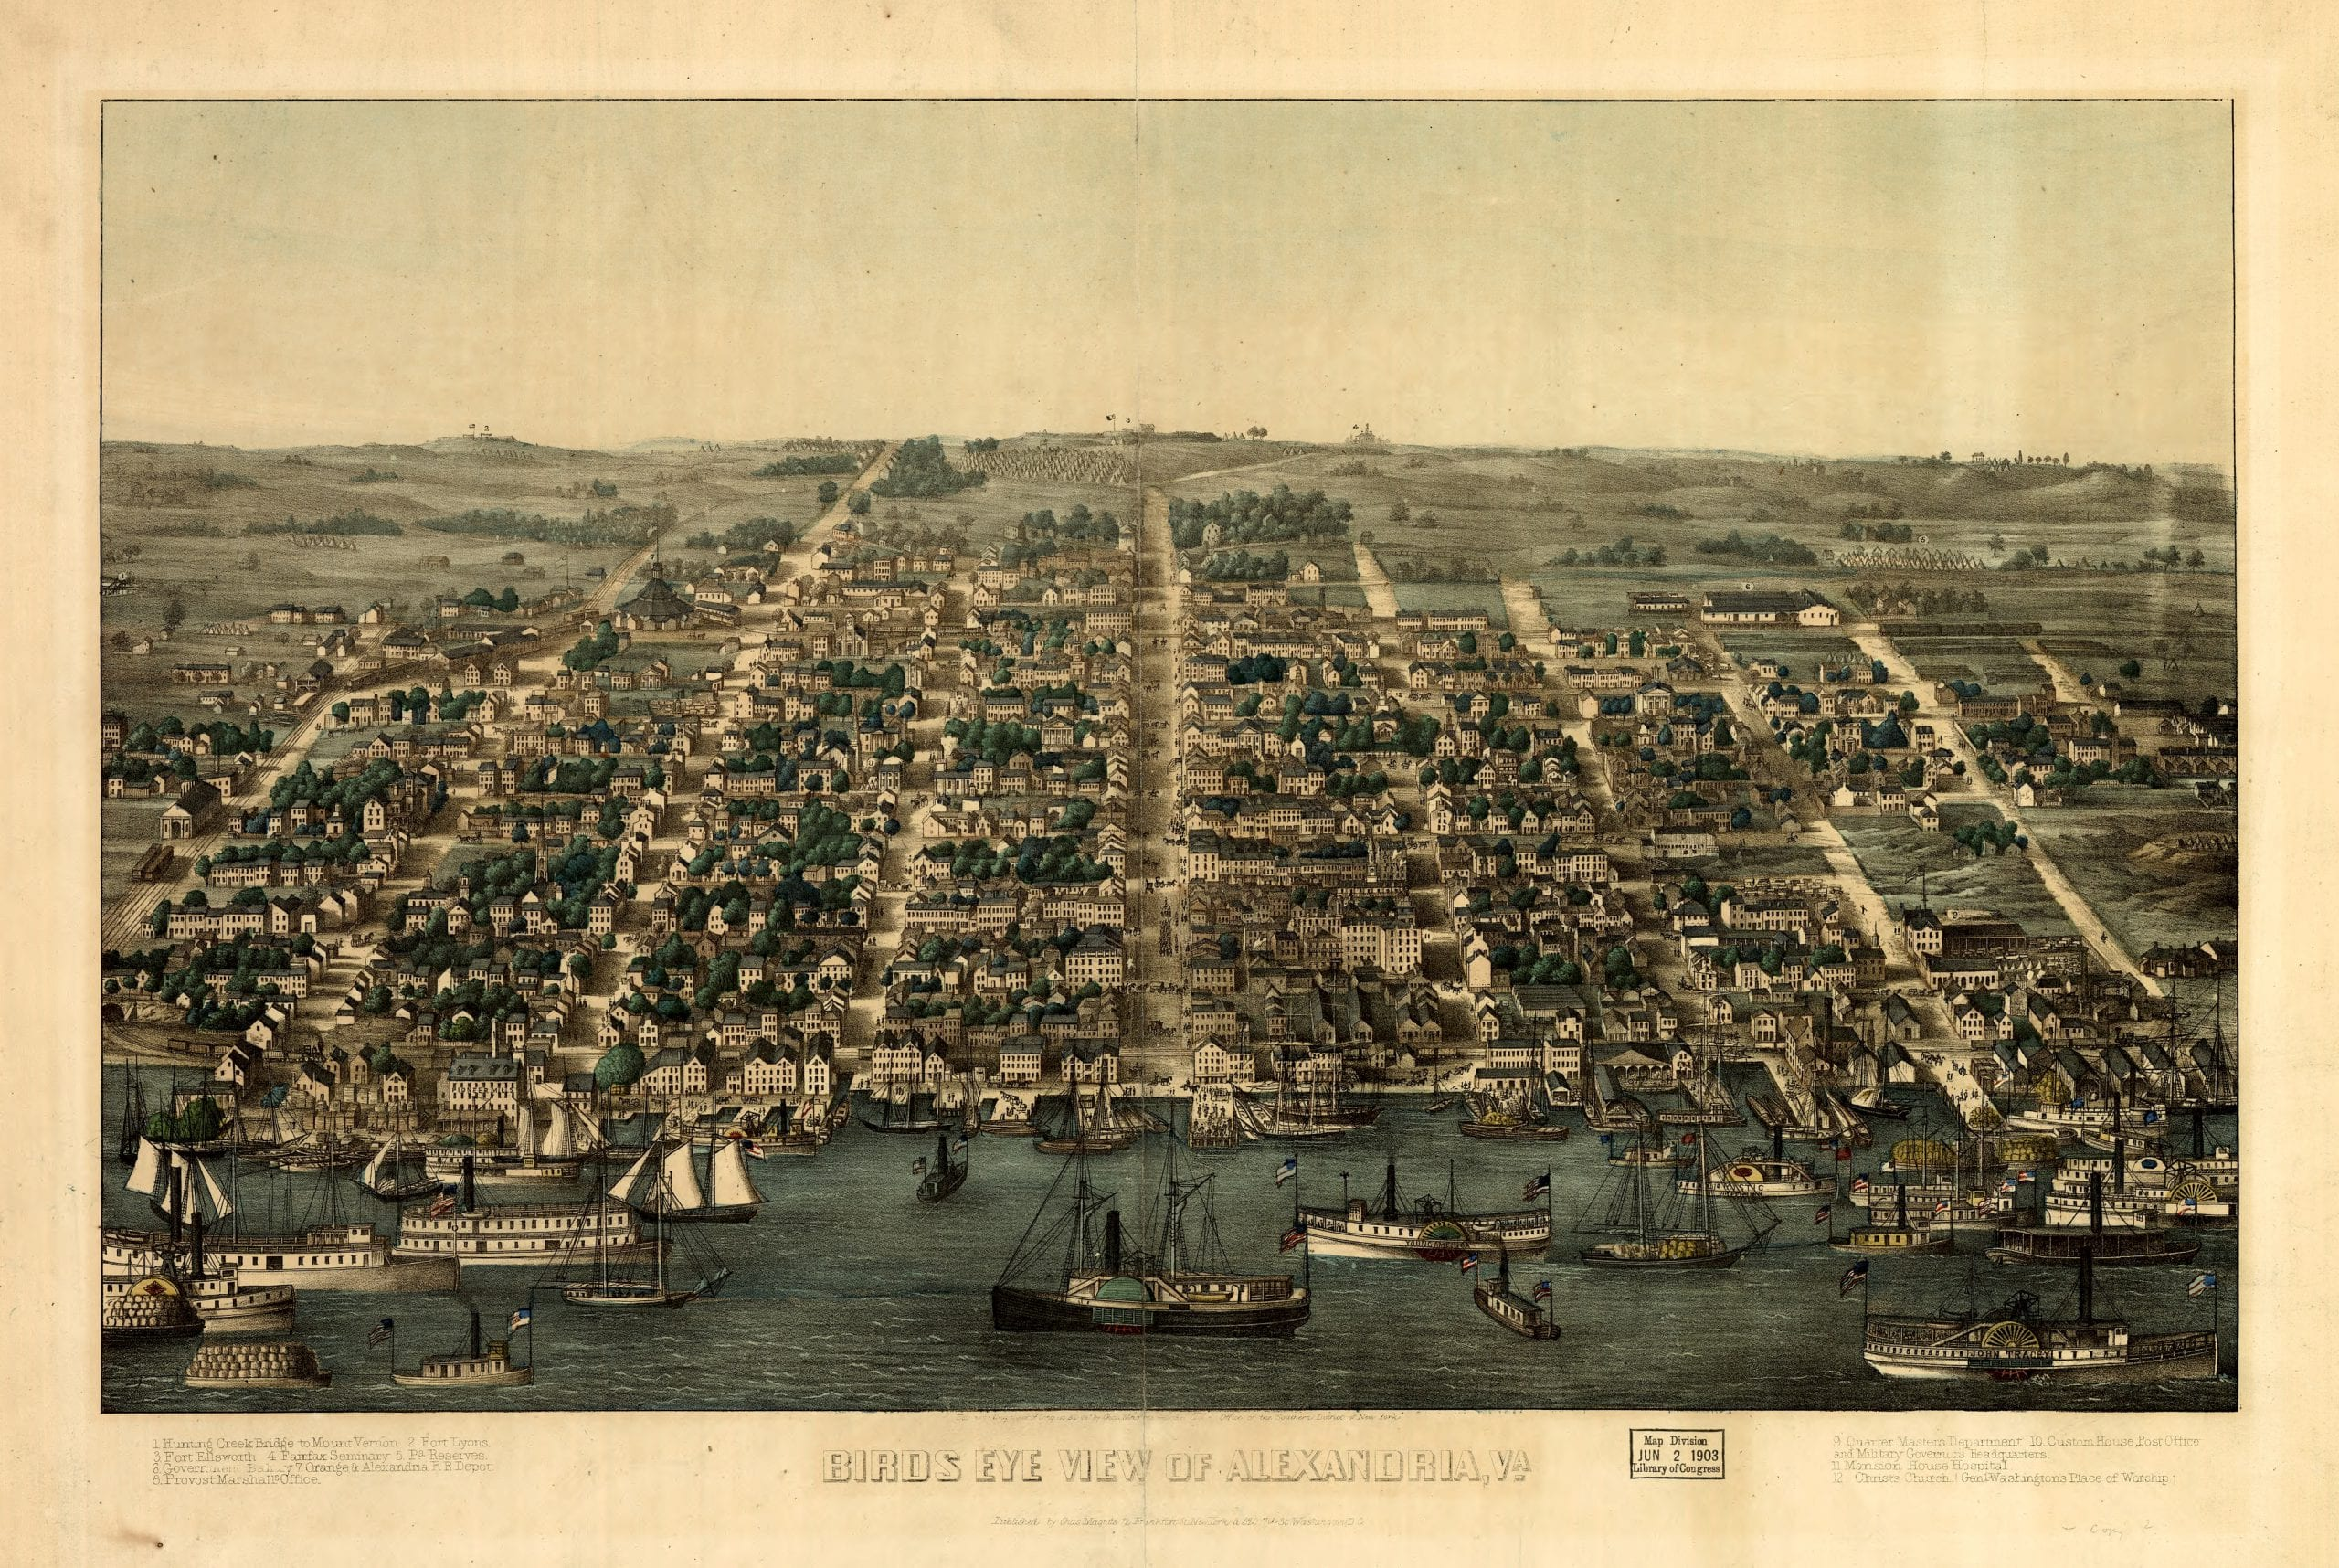 1863 view of Alexandria